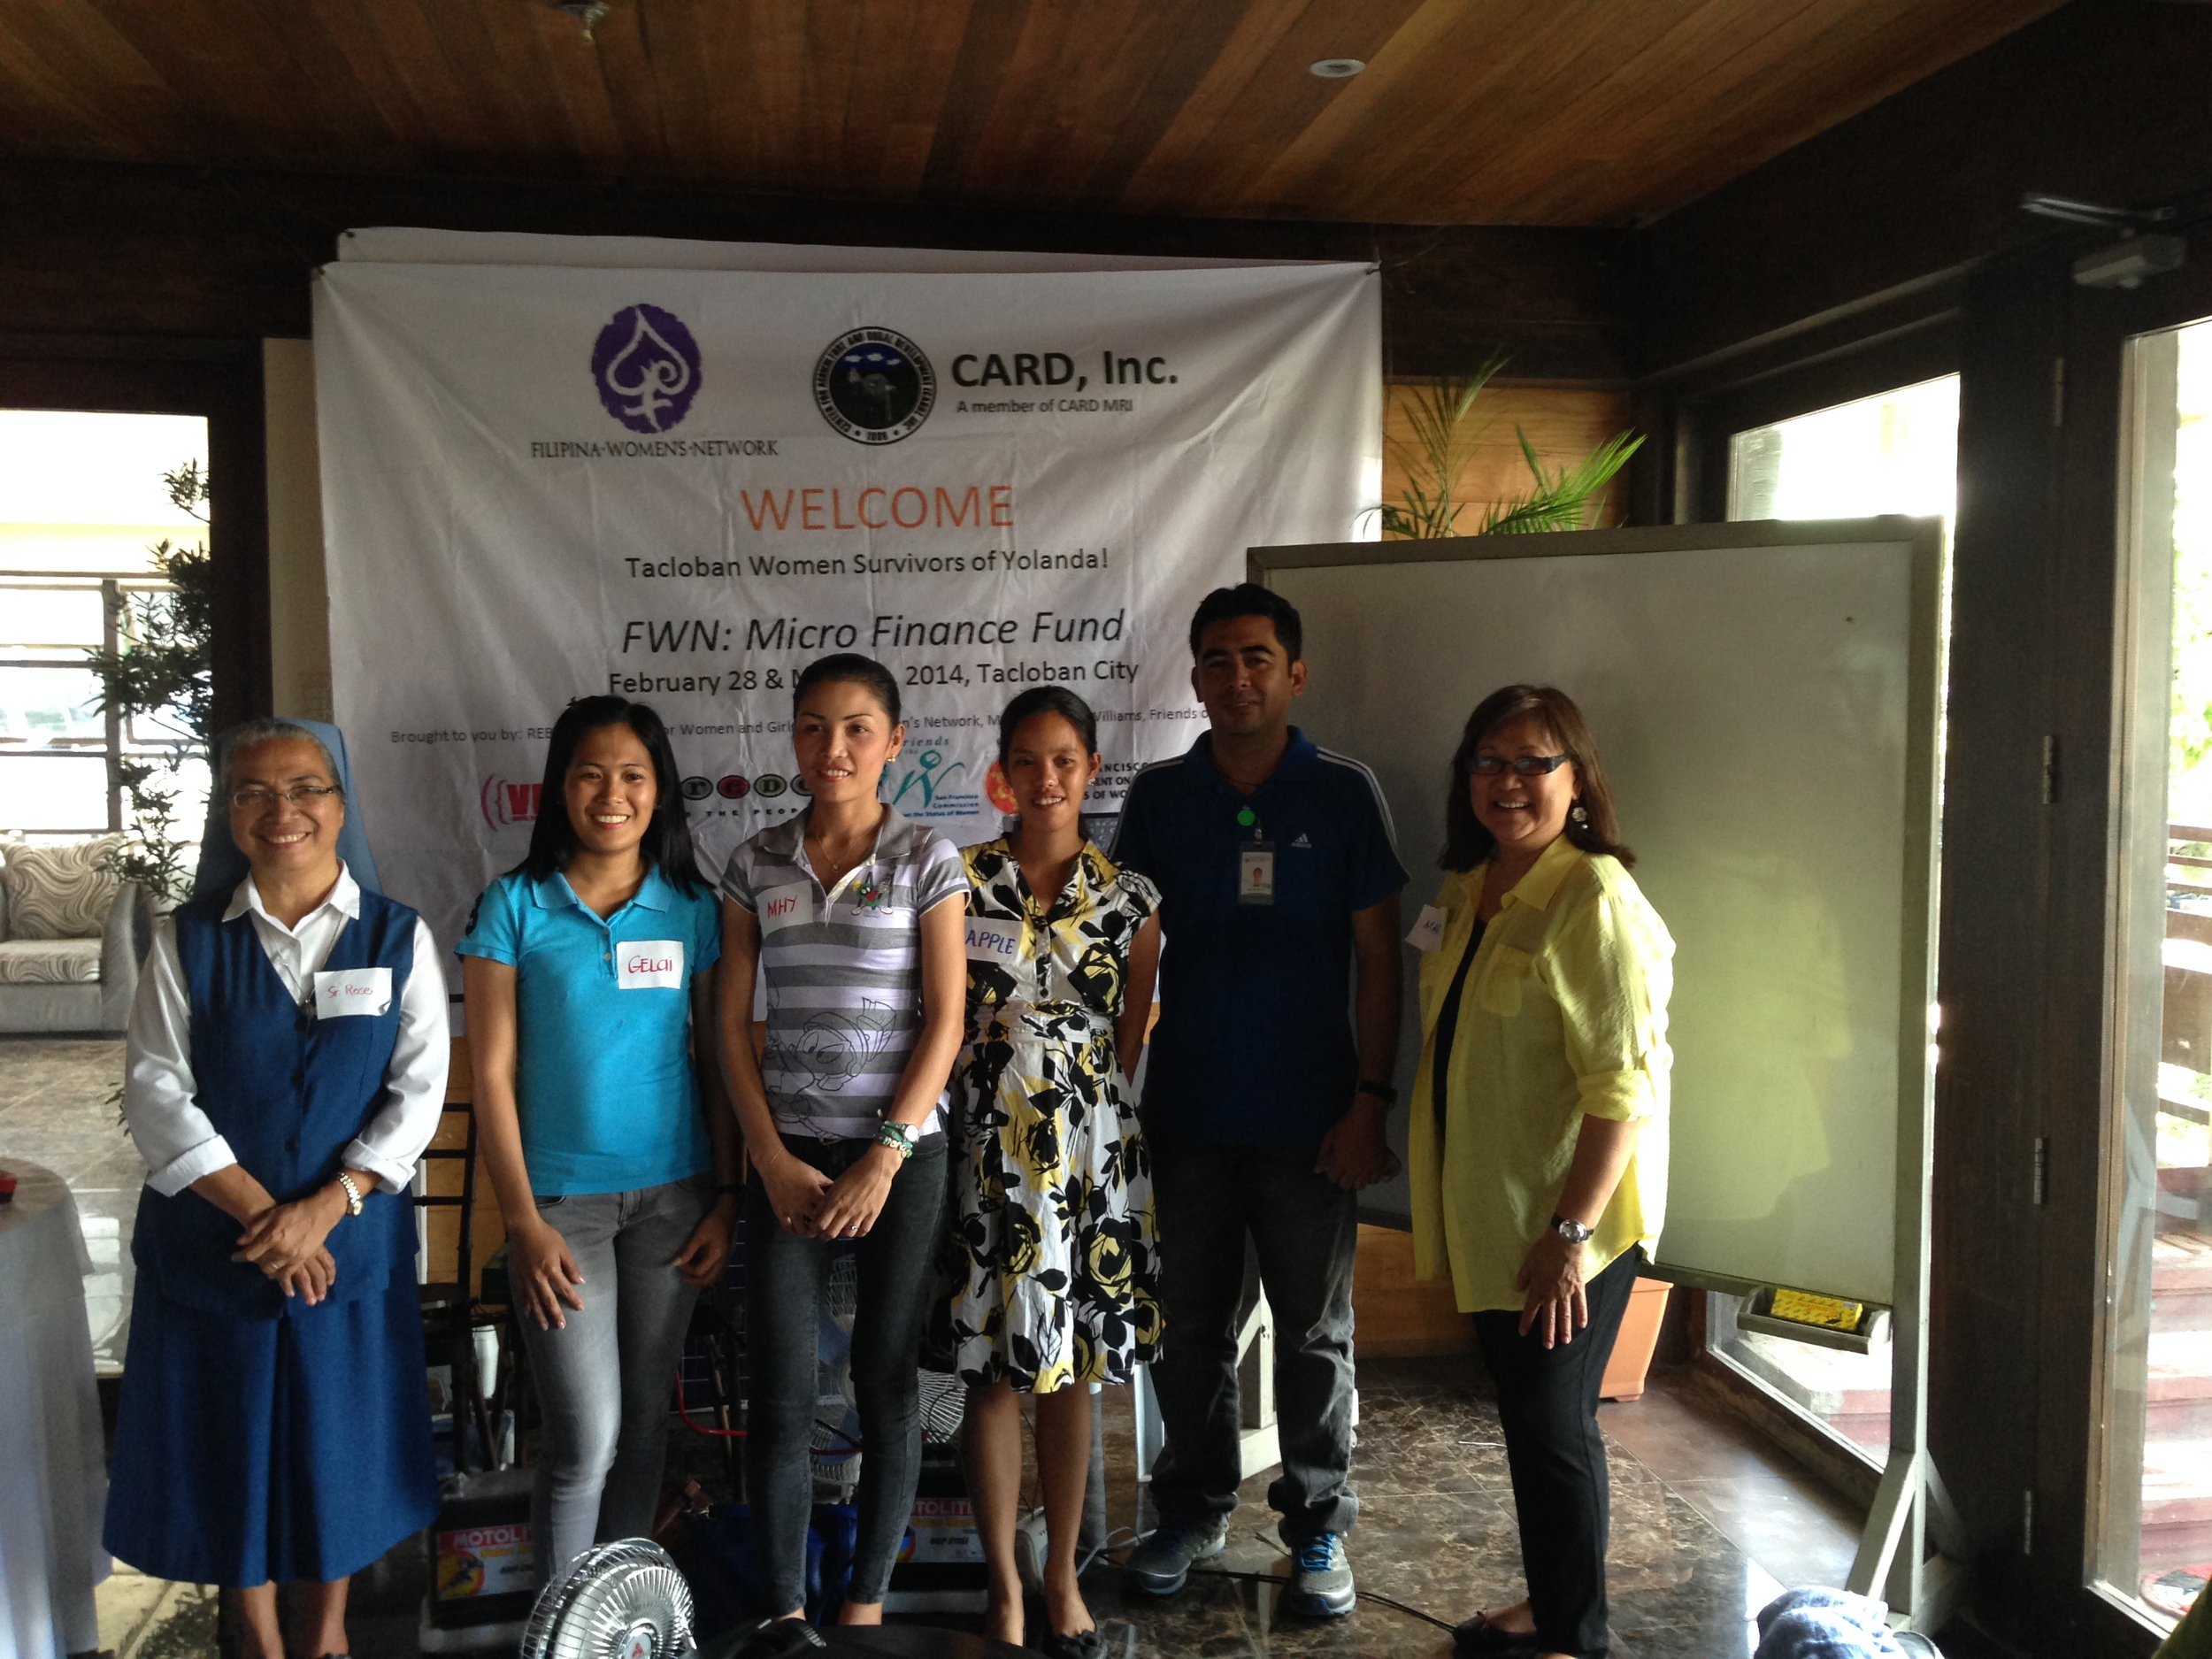 Sister Rose Ongcoy, Mother Superior of the Pauline Sisters Tacloban (left) with the Trainers of MRI CARD INC. who explained the Micro Finance Loan Application, Approval and Repayment Process to the Women of Tacloban with Marily Mondejar, Founder & CEO, Filipina Women's Network.